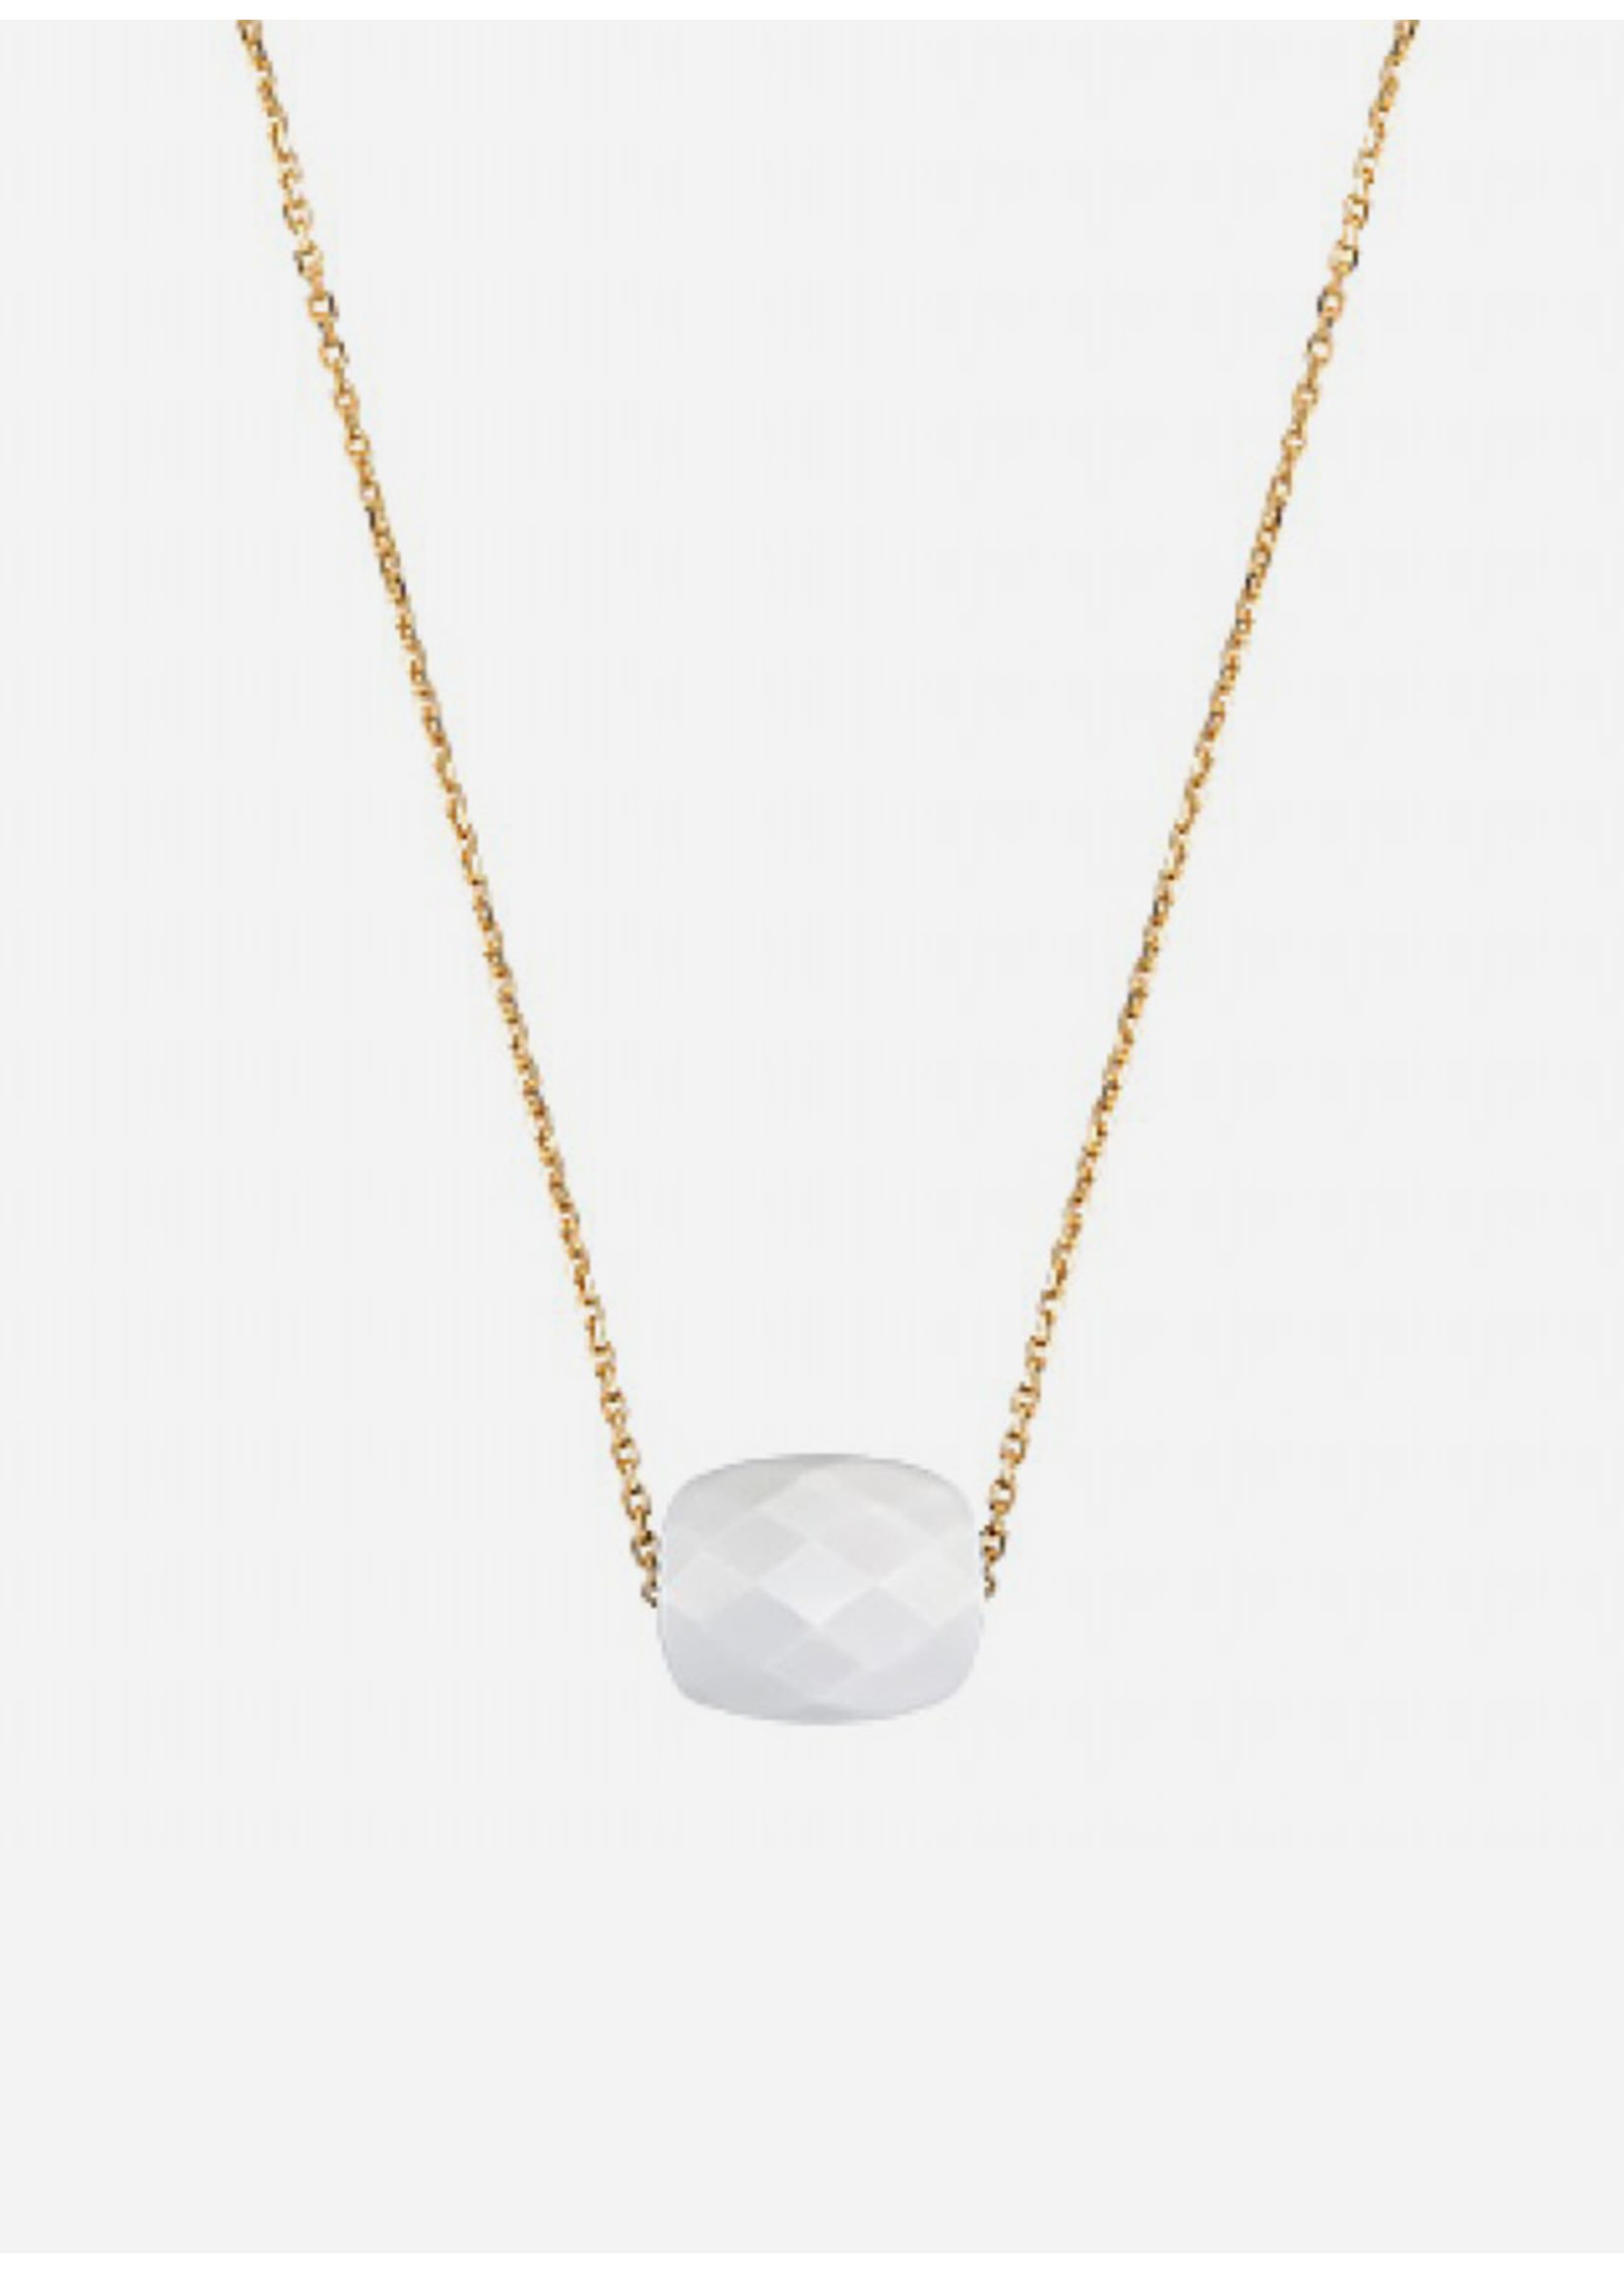 Morganne Bello Cushion white agate necklace yellow gold